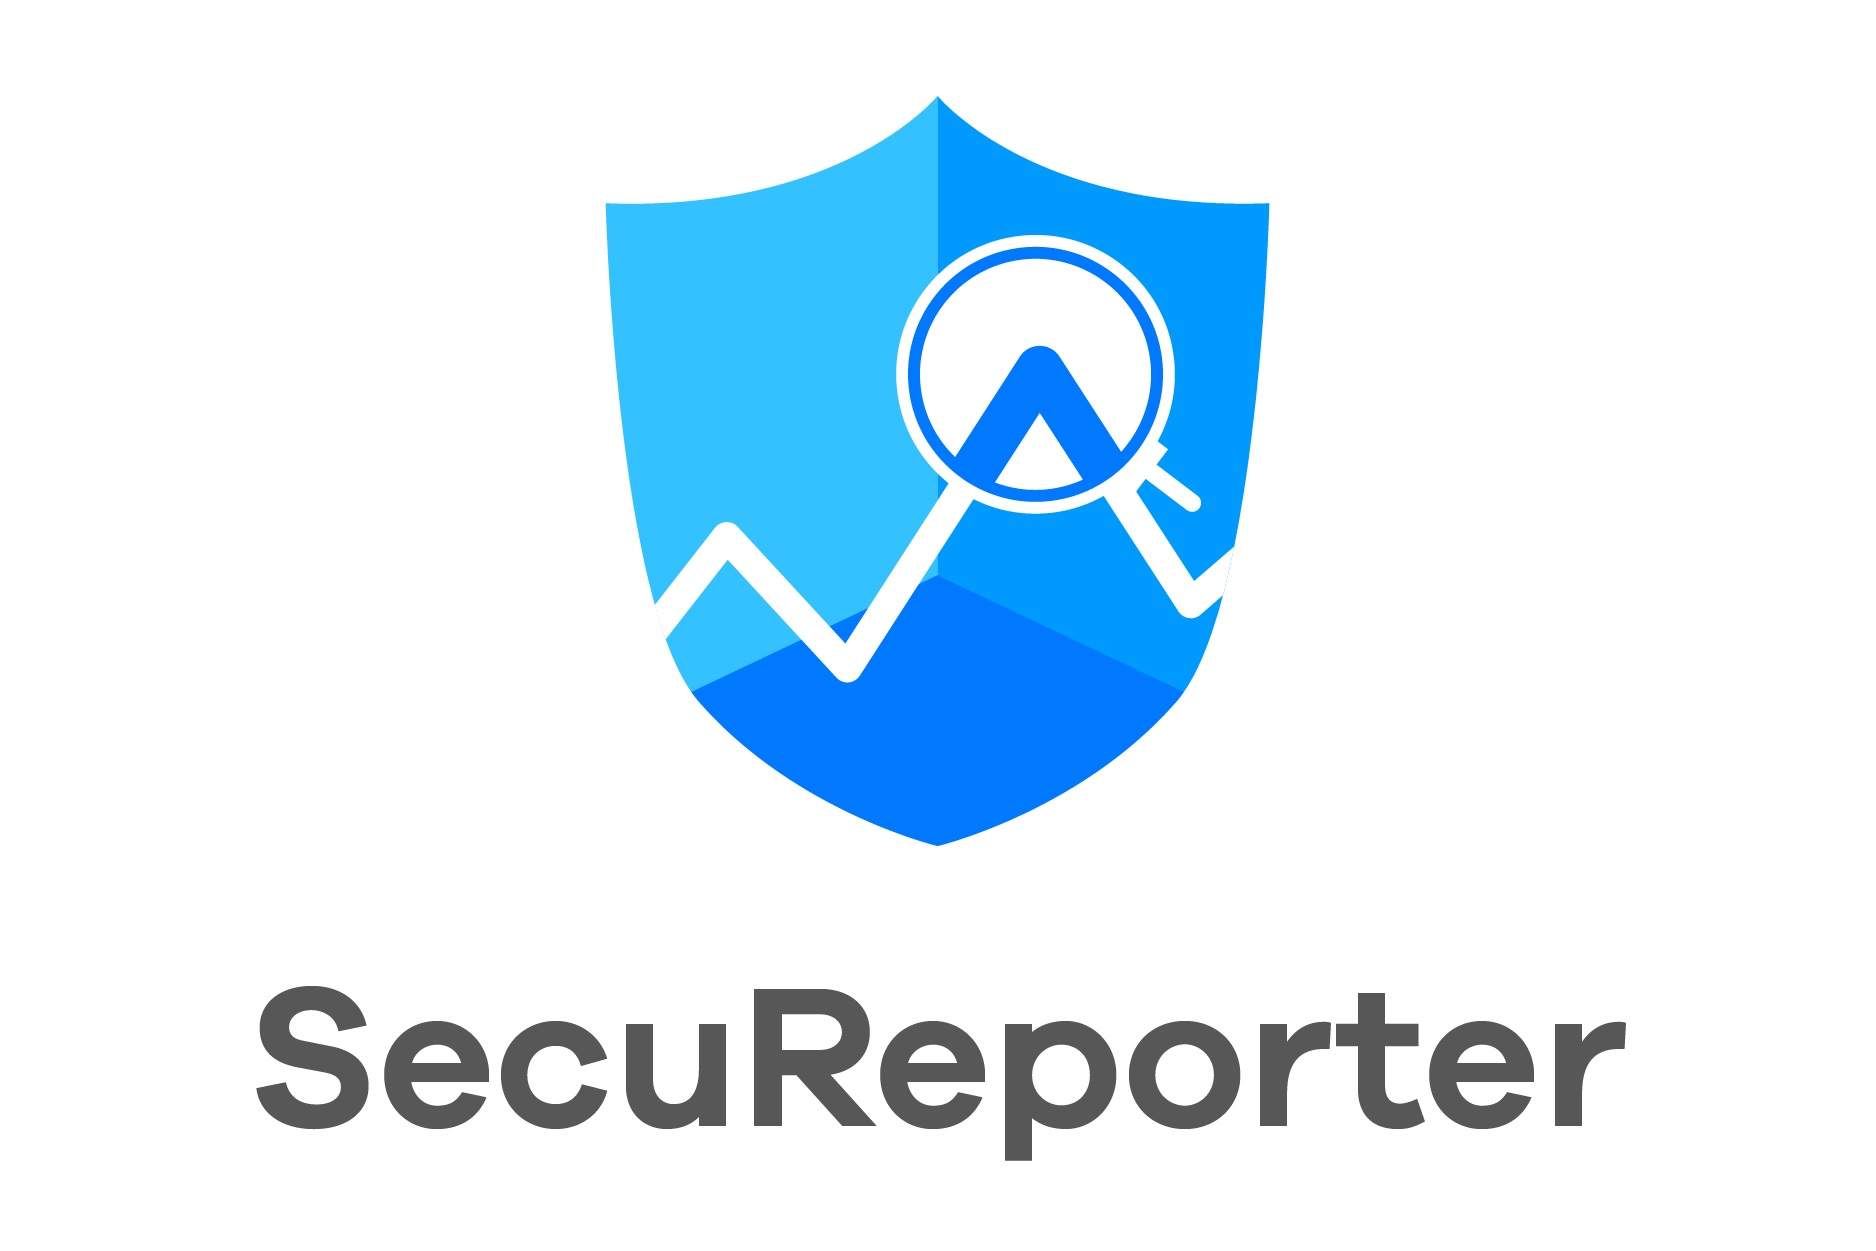 SecuReporter Security Analytics Service / Zyxel Communications Corporation